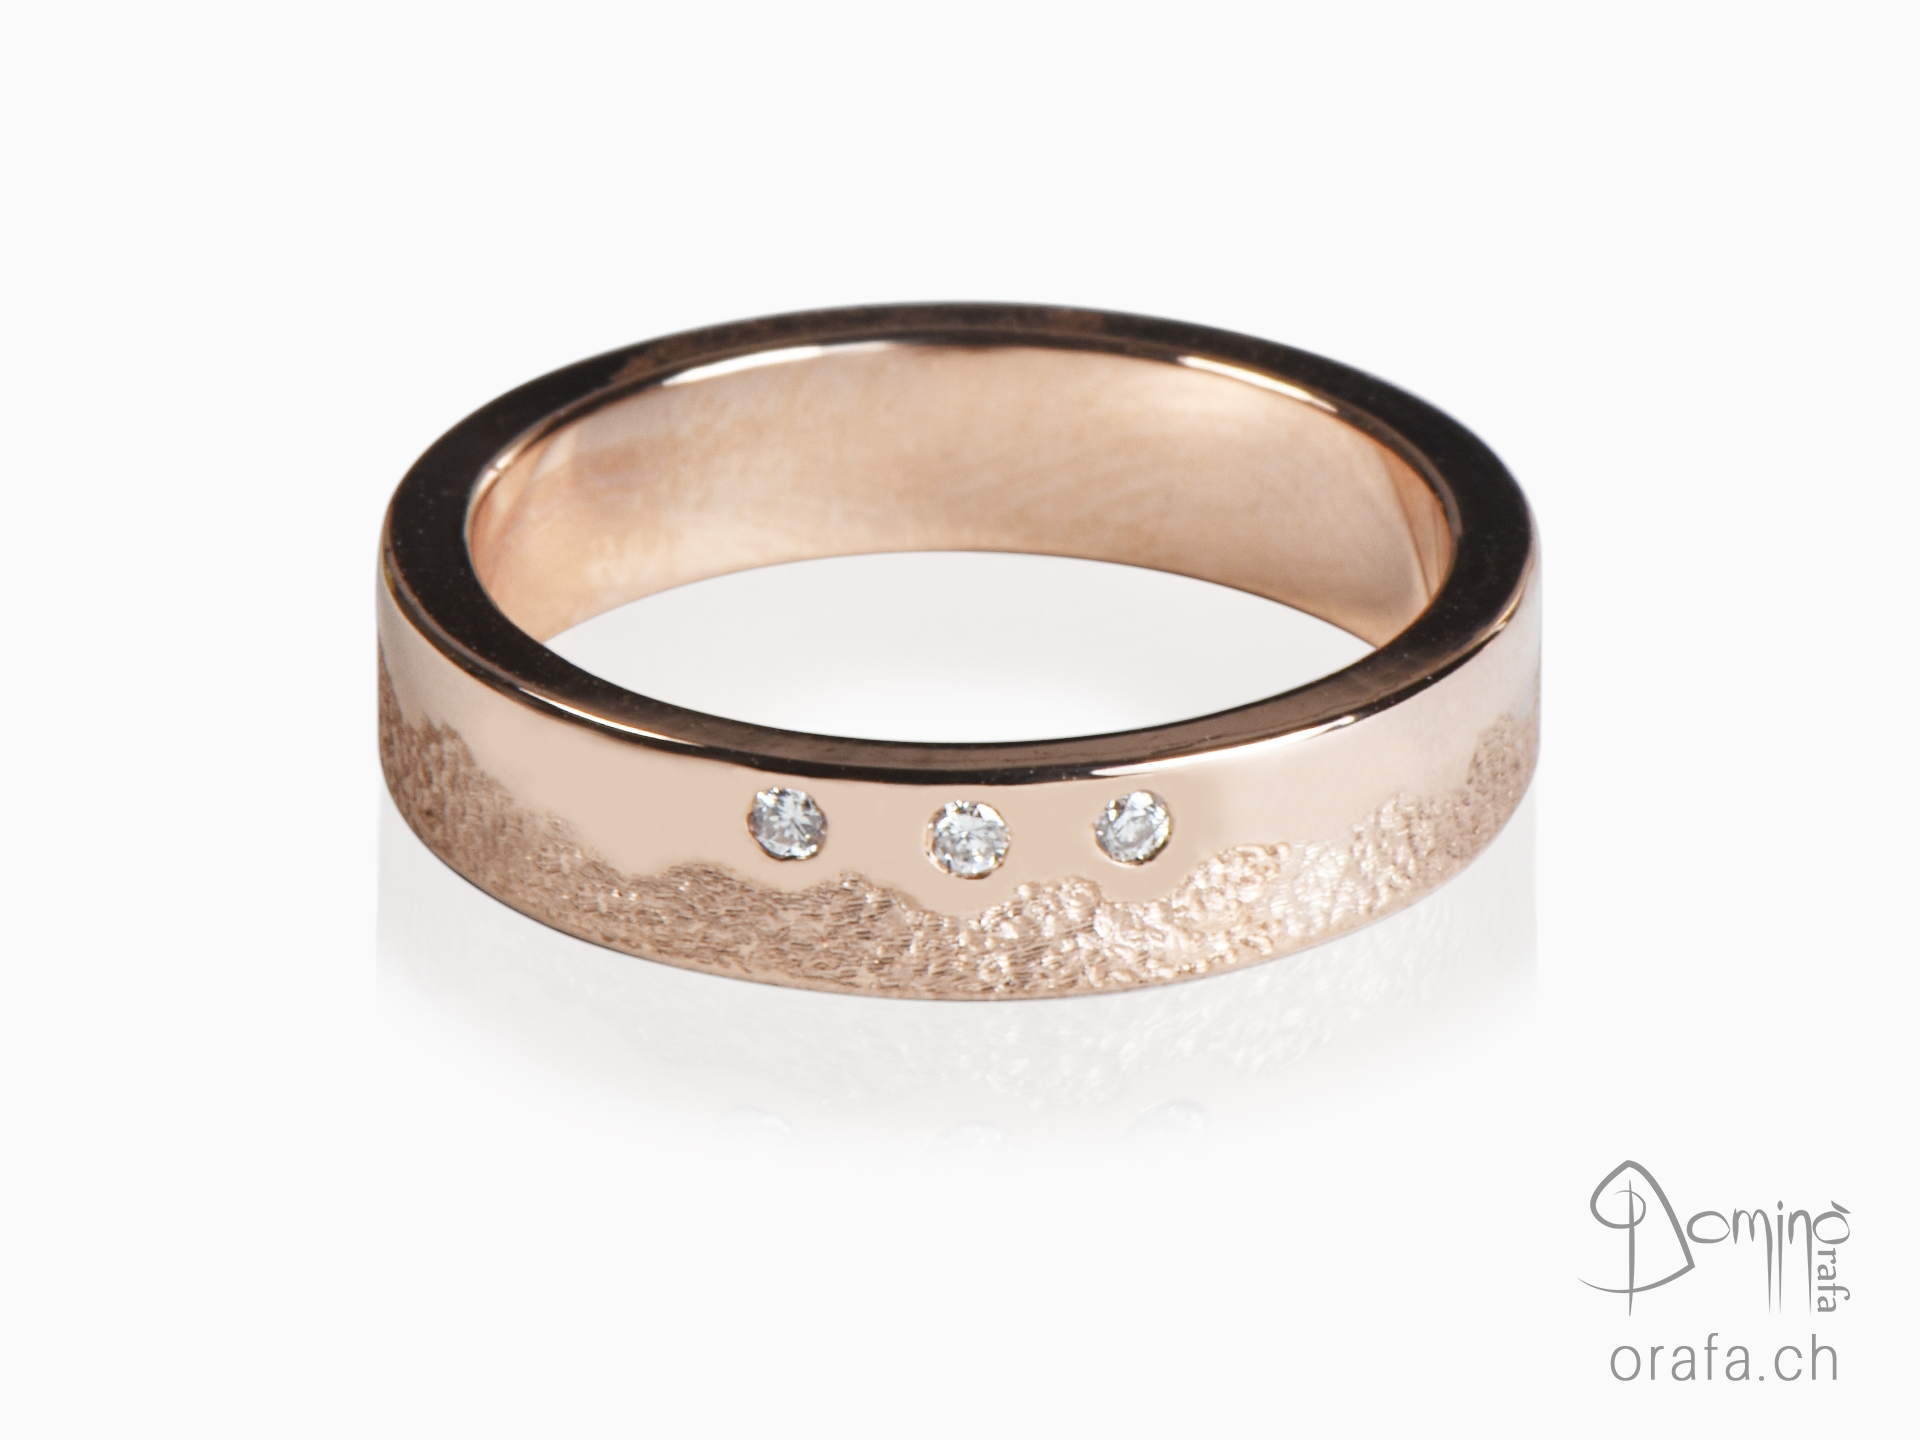 Irregular Sabbia/polished ring with 3 diamonds